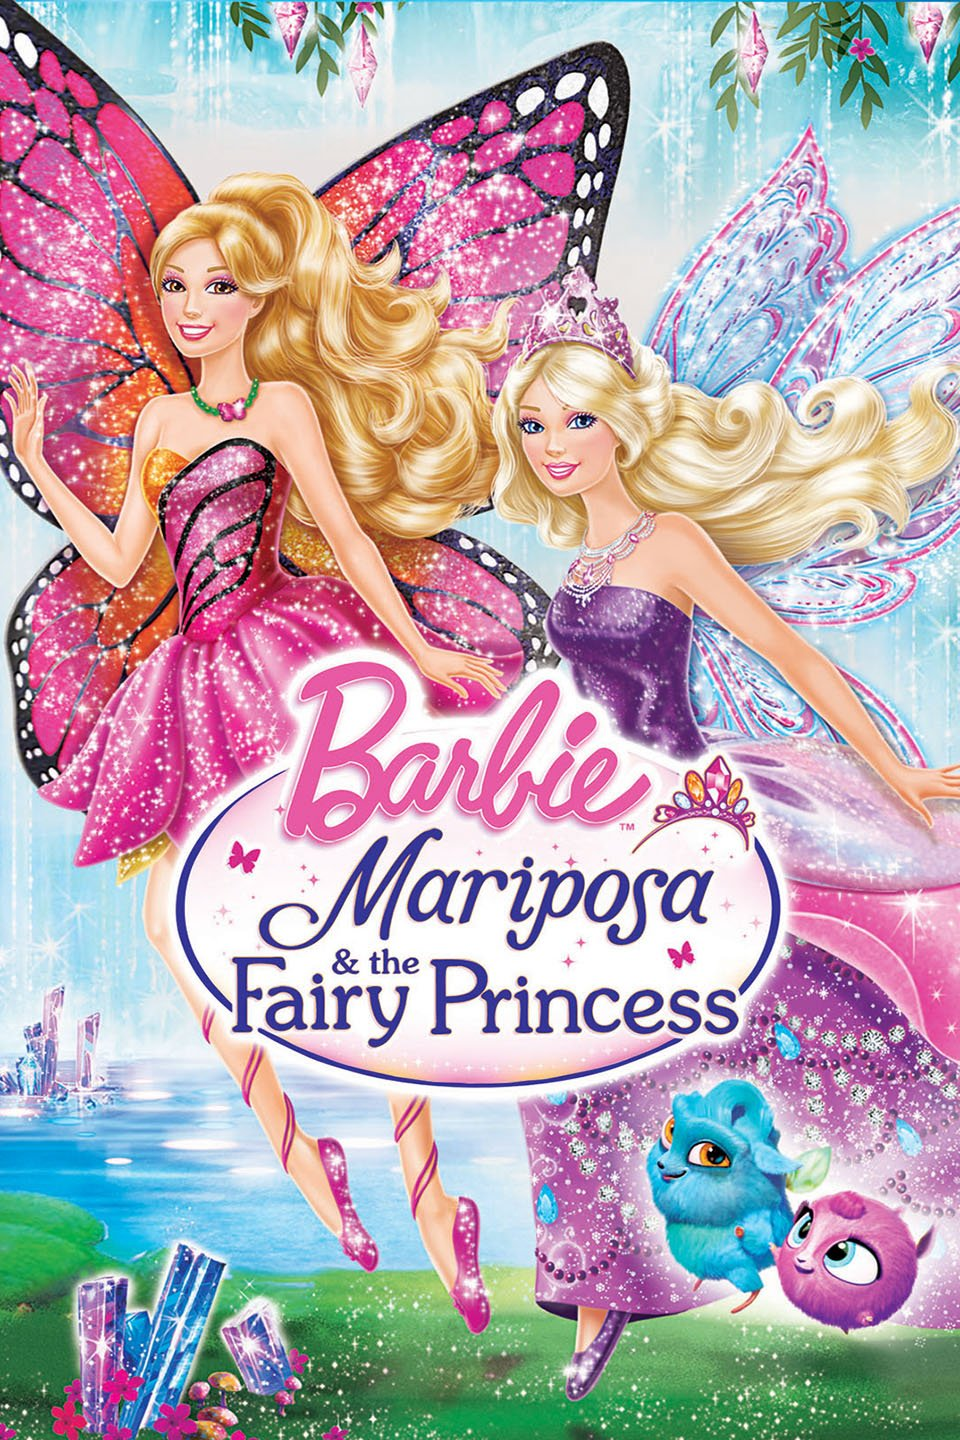 Barbie Mariposa and the Fairy Princess-Barbie Mariposa and the Fairy Princess